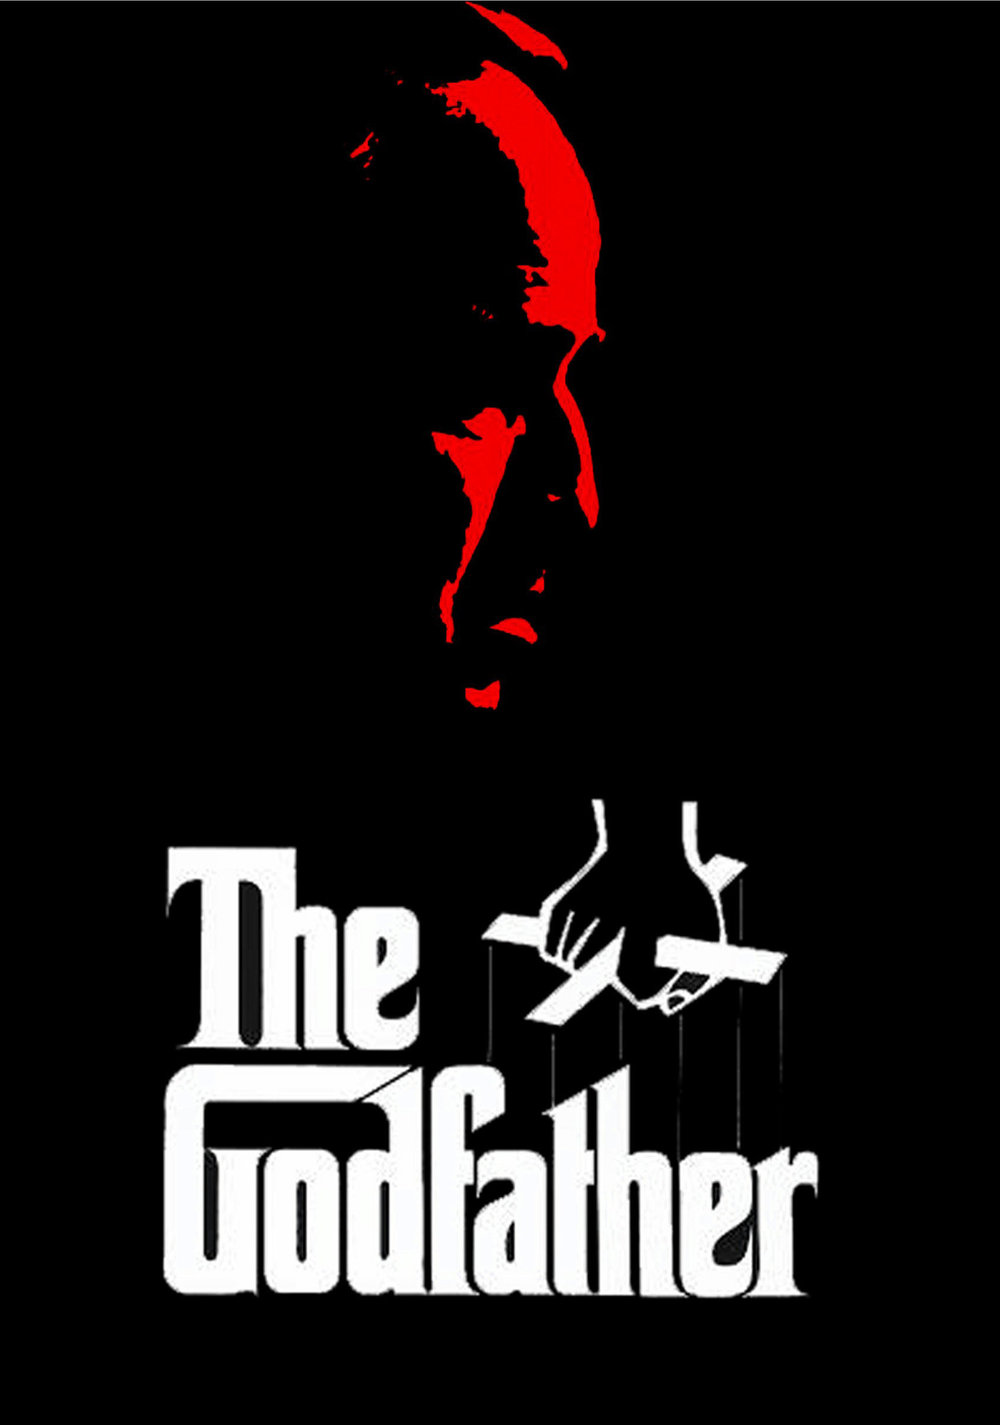 THE GODFATHER (1972) spoken by Peter Clemenza/Richard S. Castellano